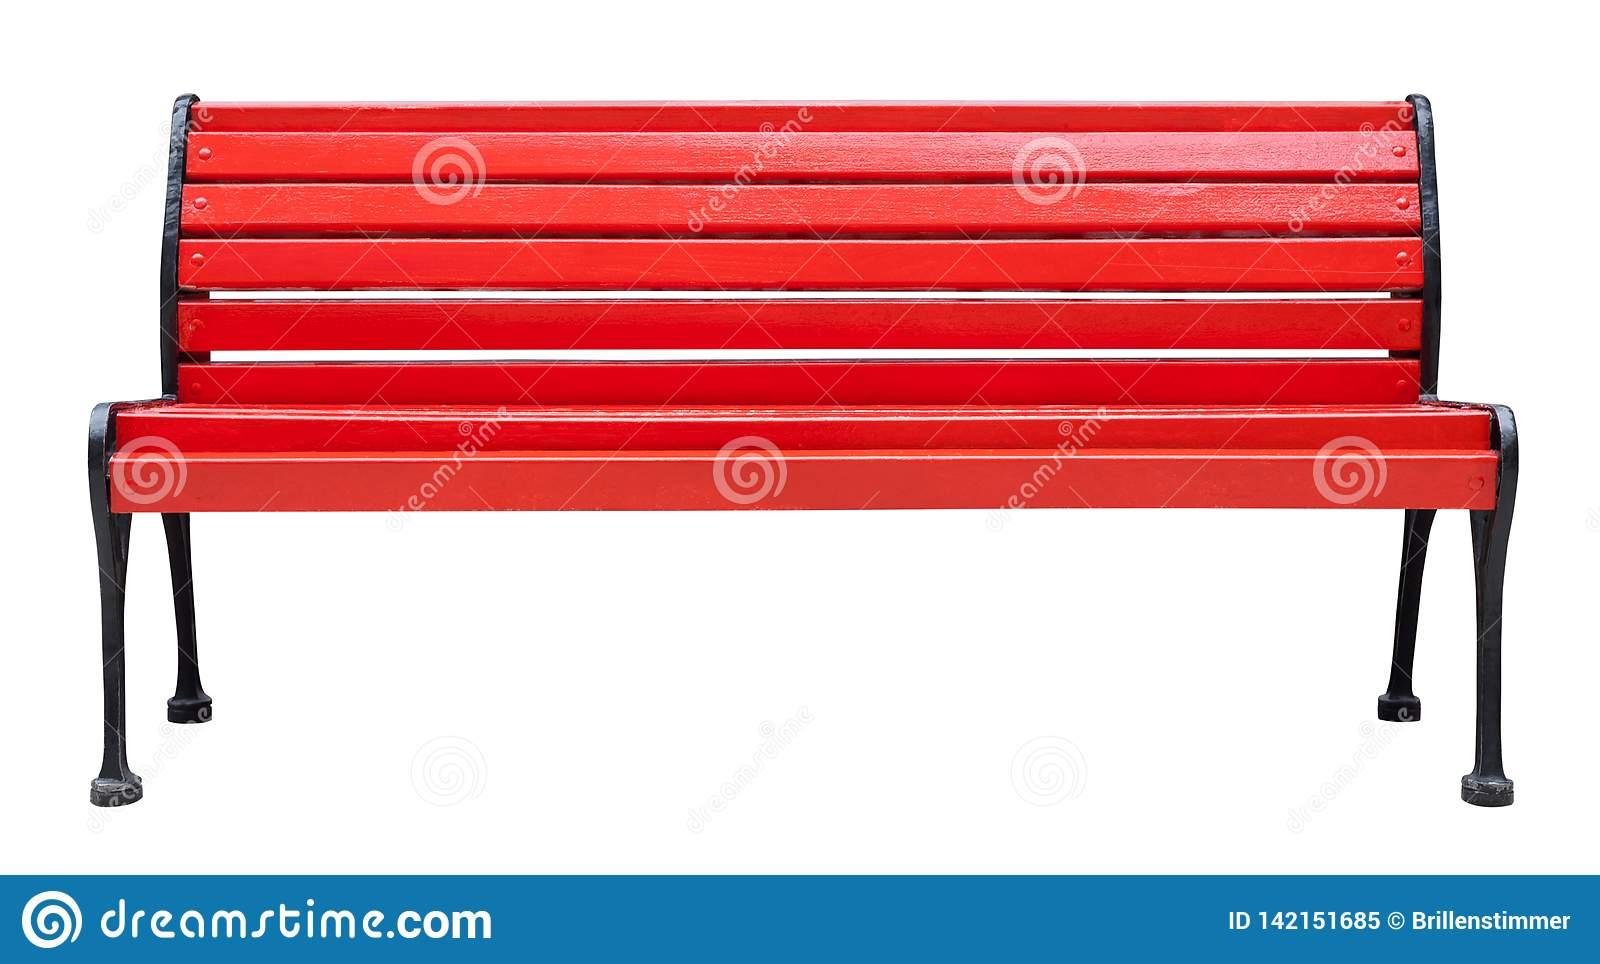 Wooden bench painted in red with metal legs, isolated on a white background design element